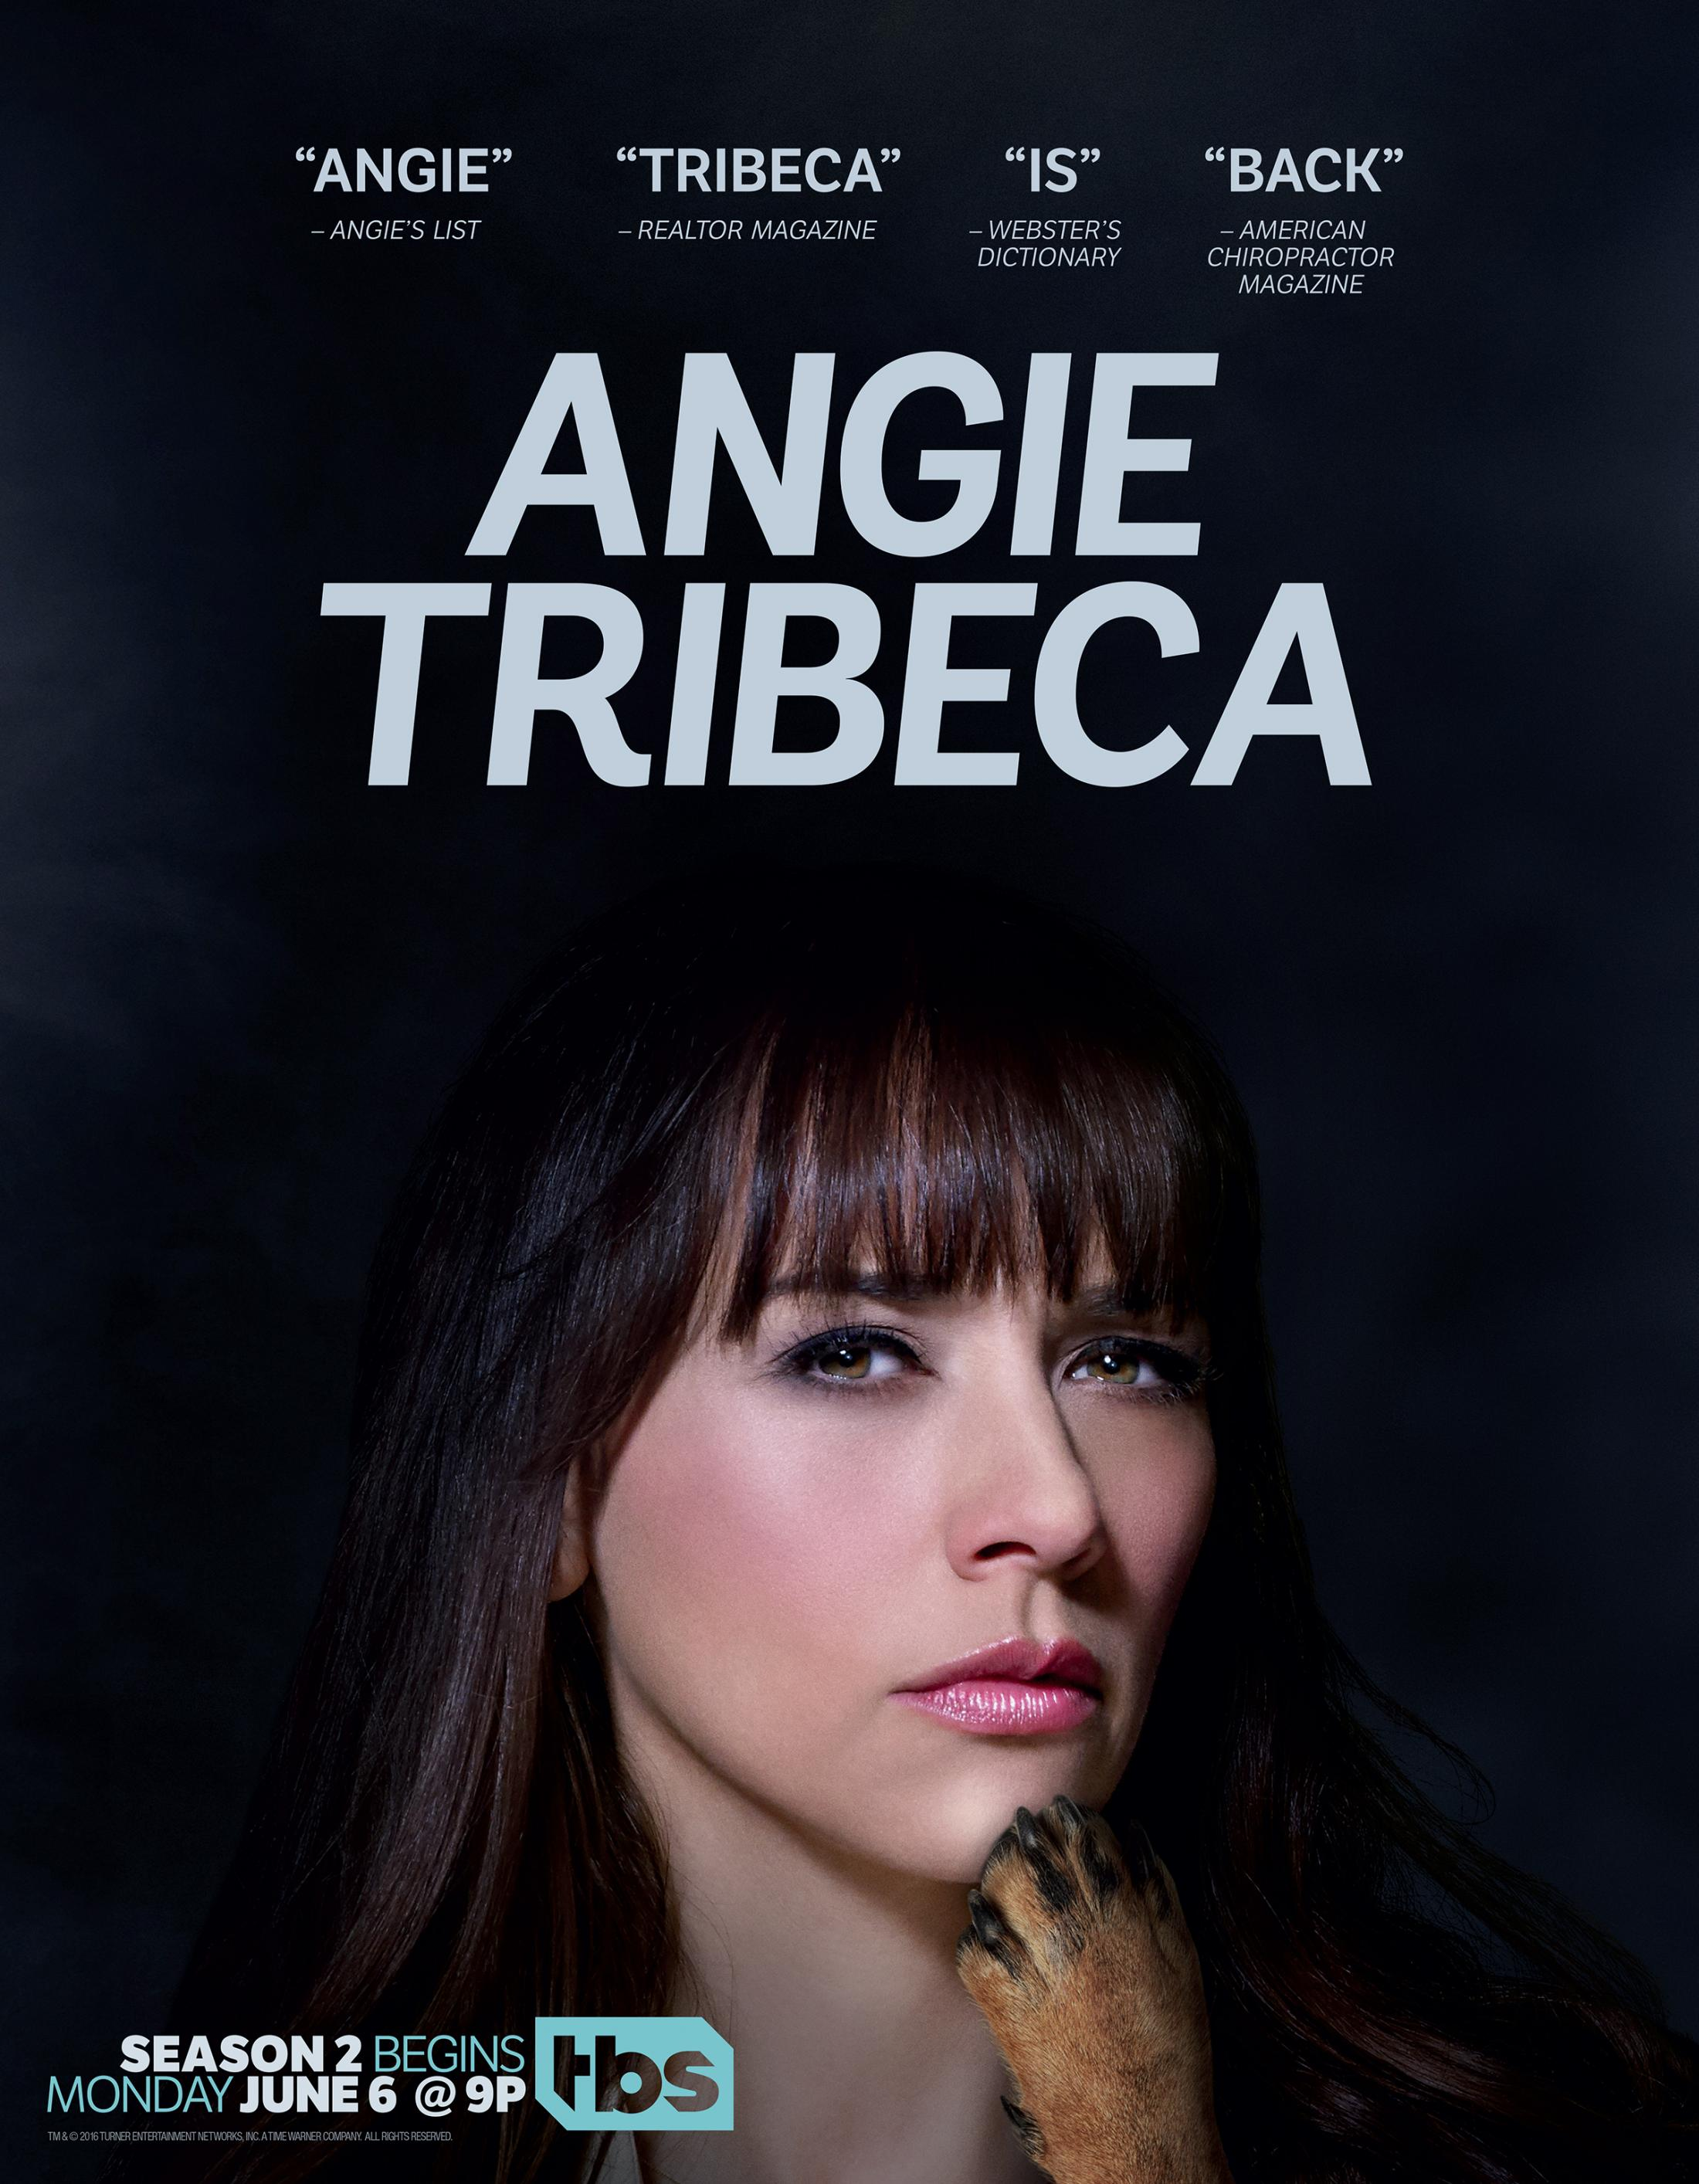 Thumbnail for Angie Tribeca Season 2 One Sheet